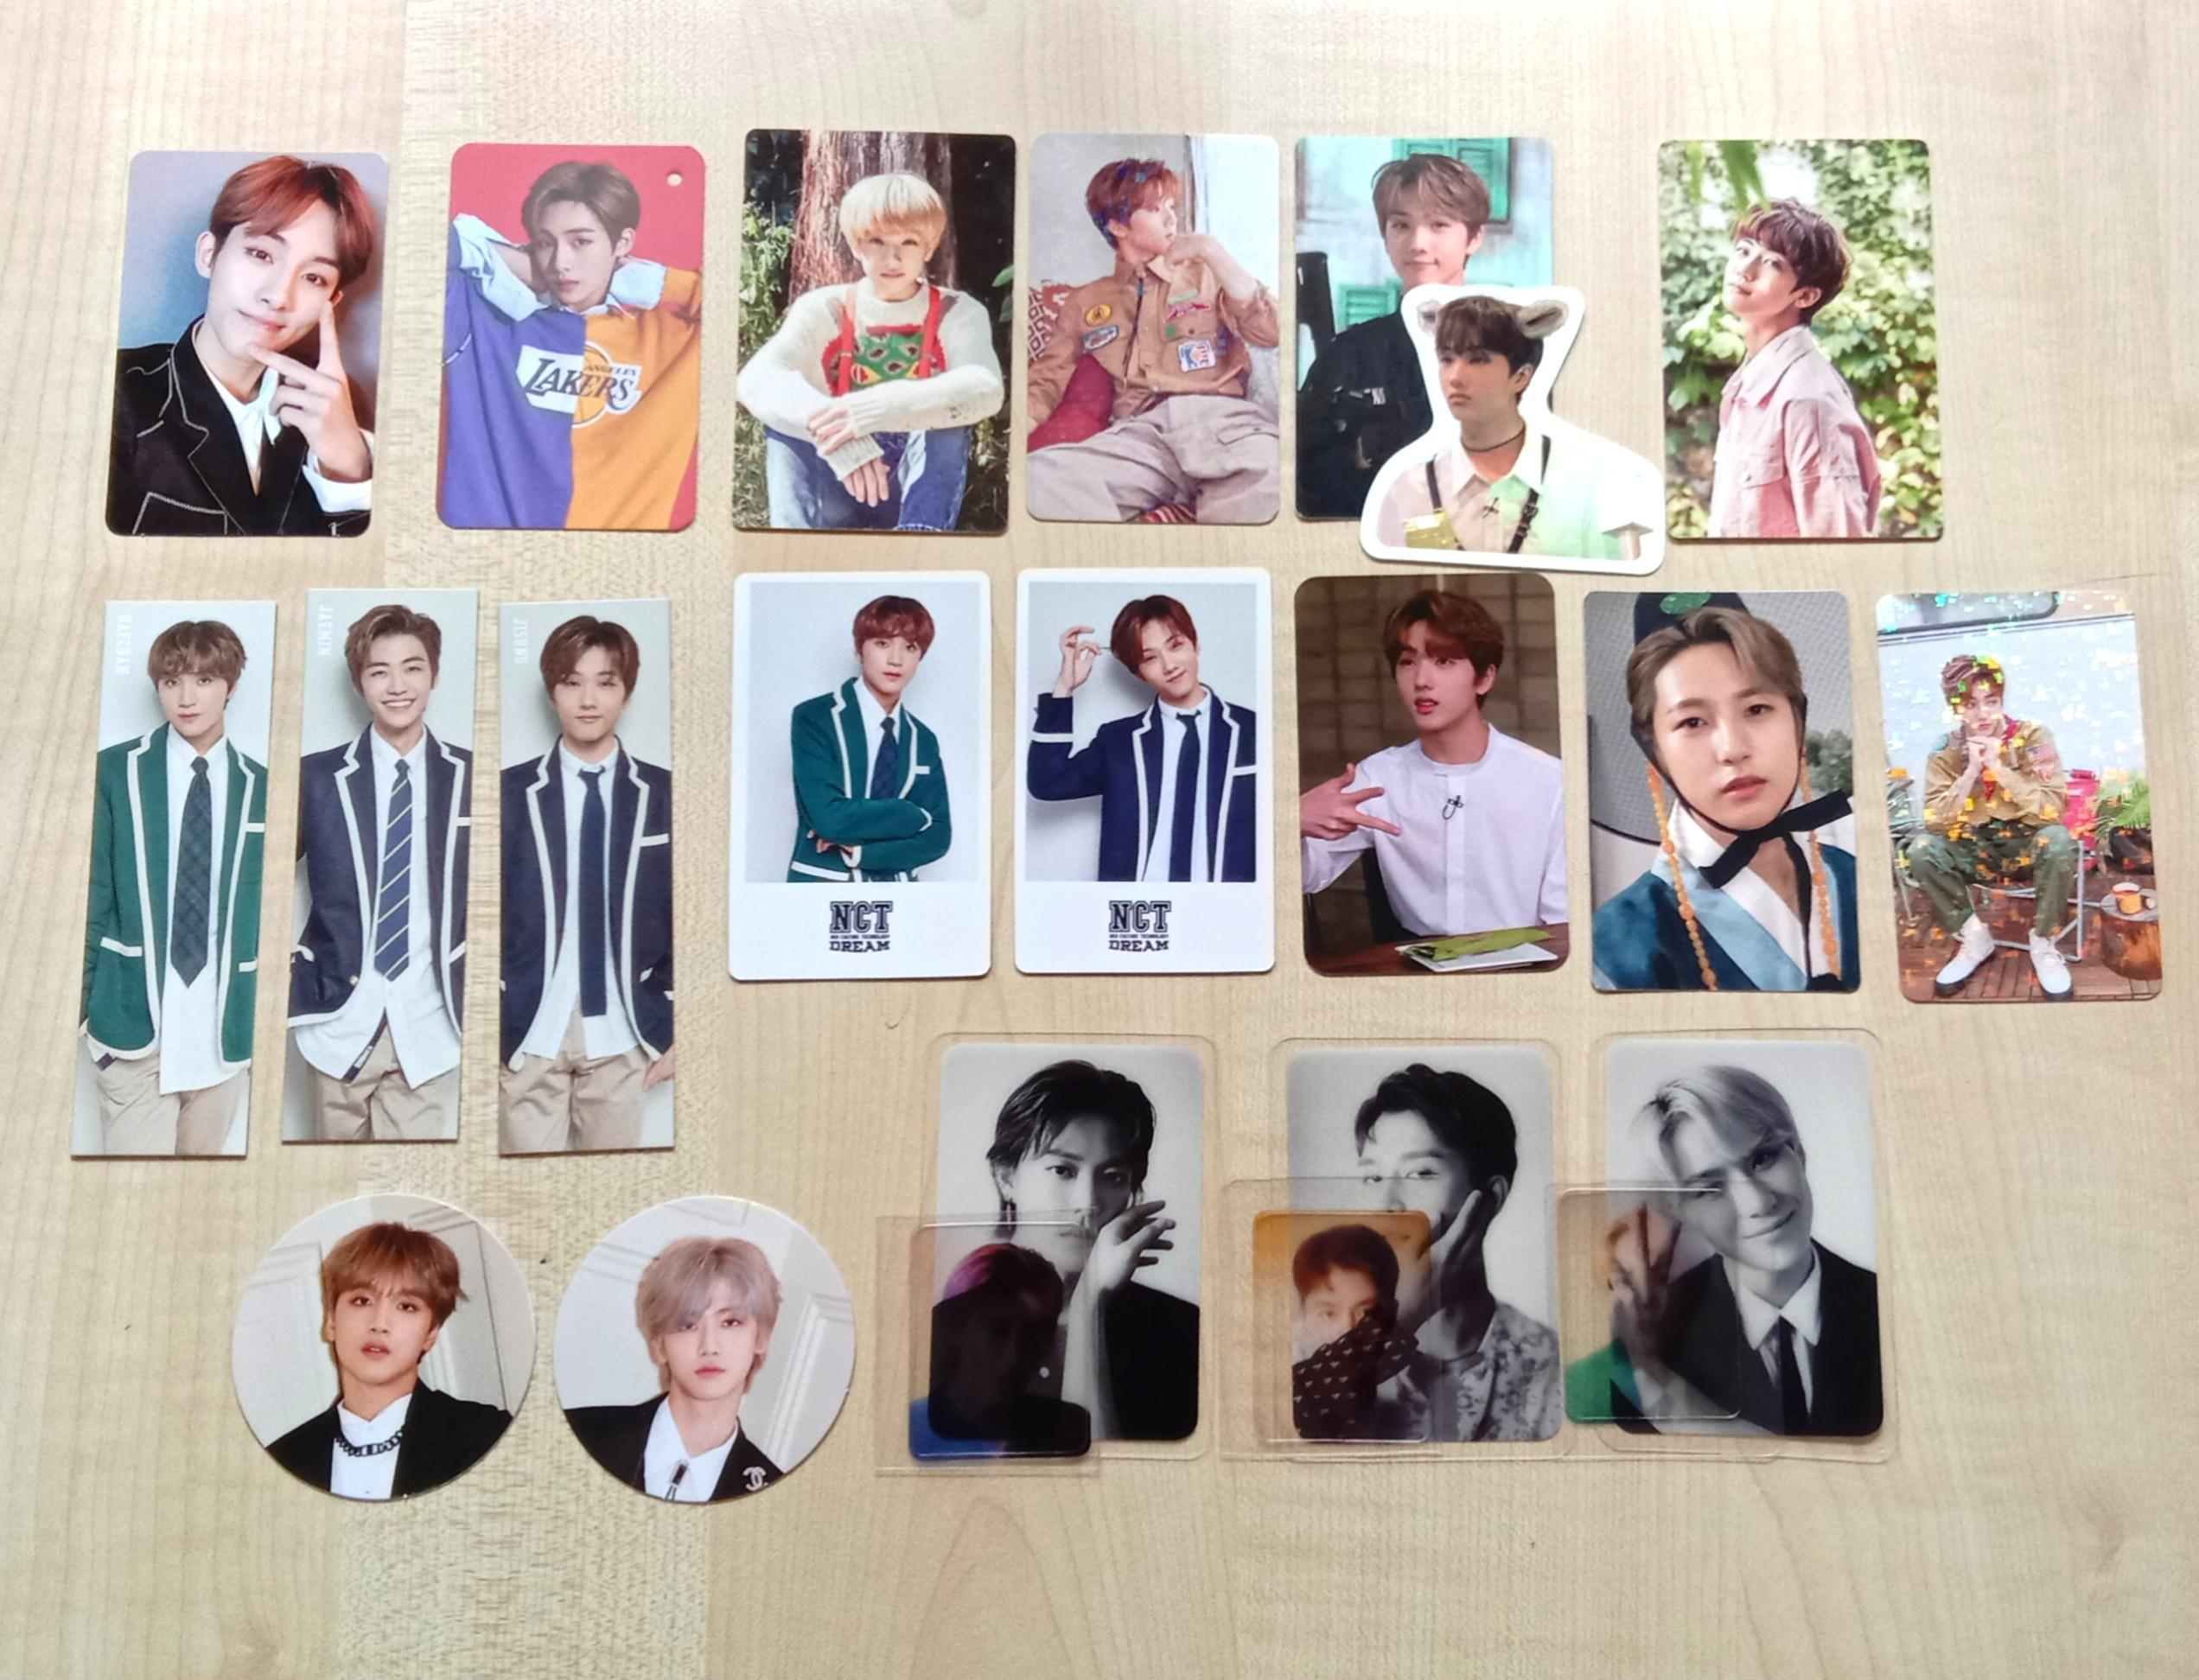 NCT 127/NCT DREAM photocards